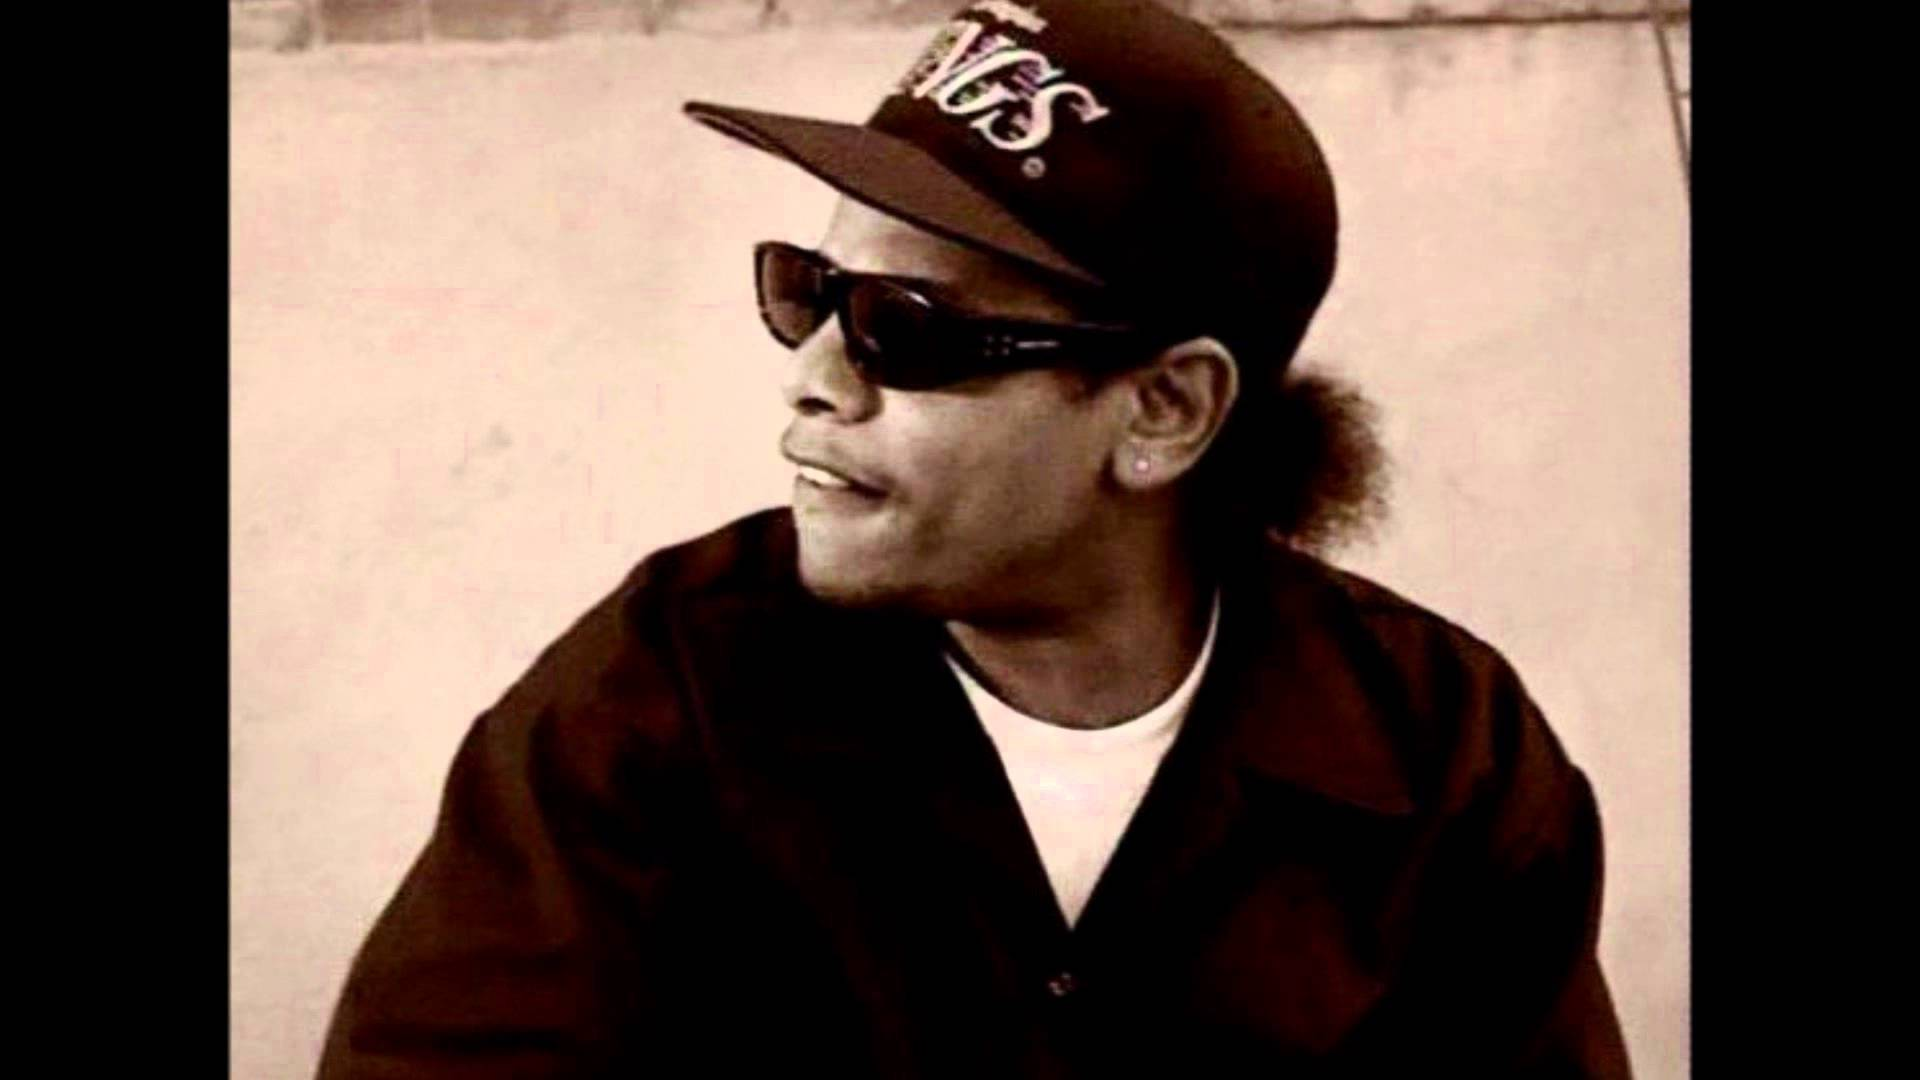 Eazy E   Real Muthaphukkin Gs [Dre Day Beat Remix] 1920x1080